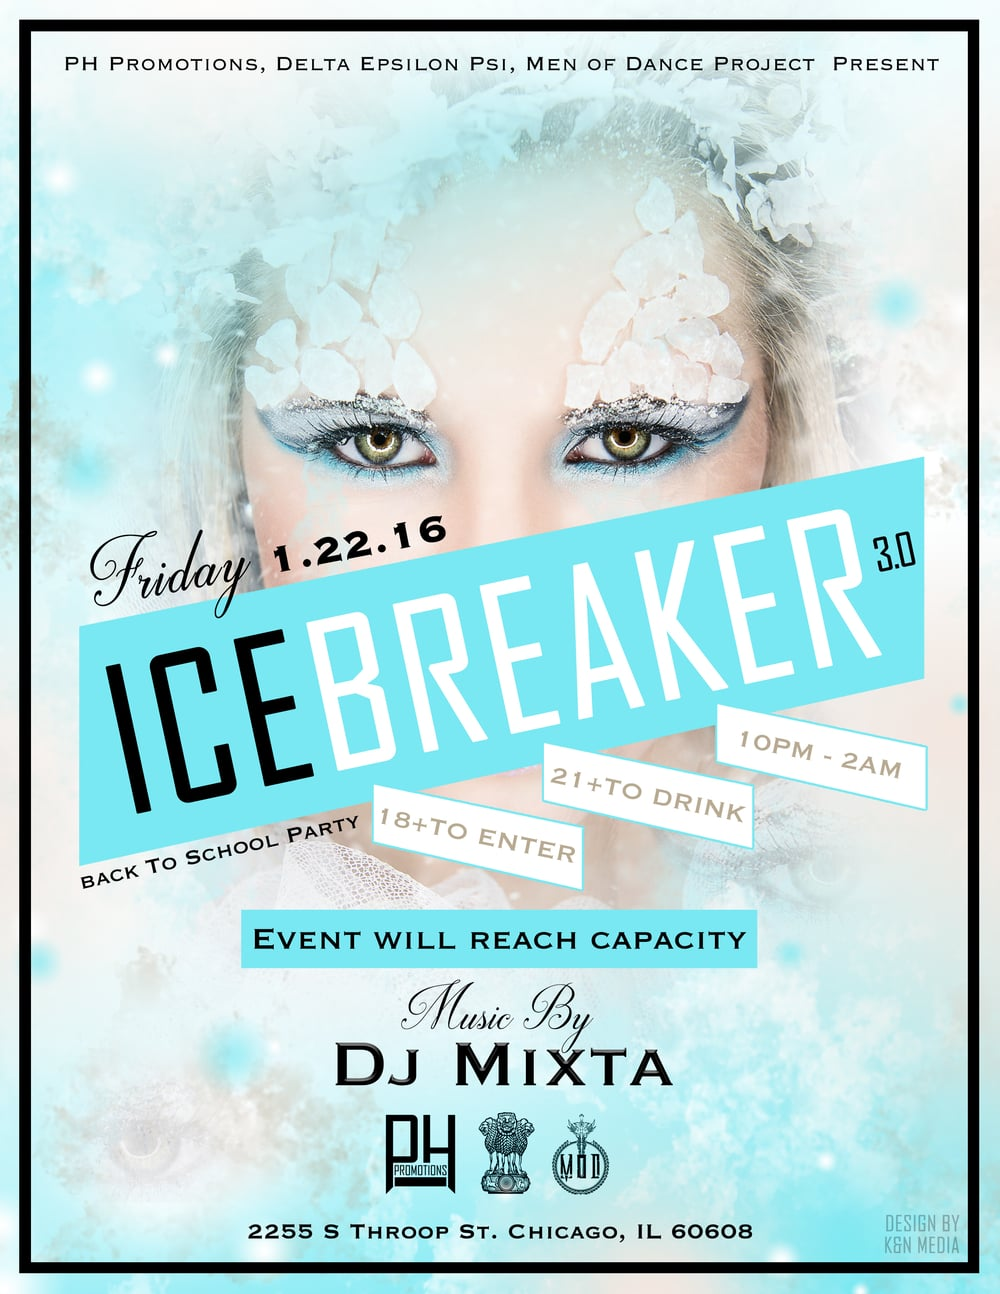 Ice Breaker 3.0 Flyer Design 1e - K&N Media.jpg